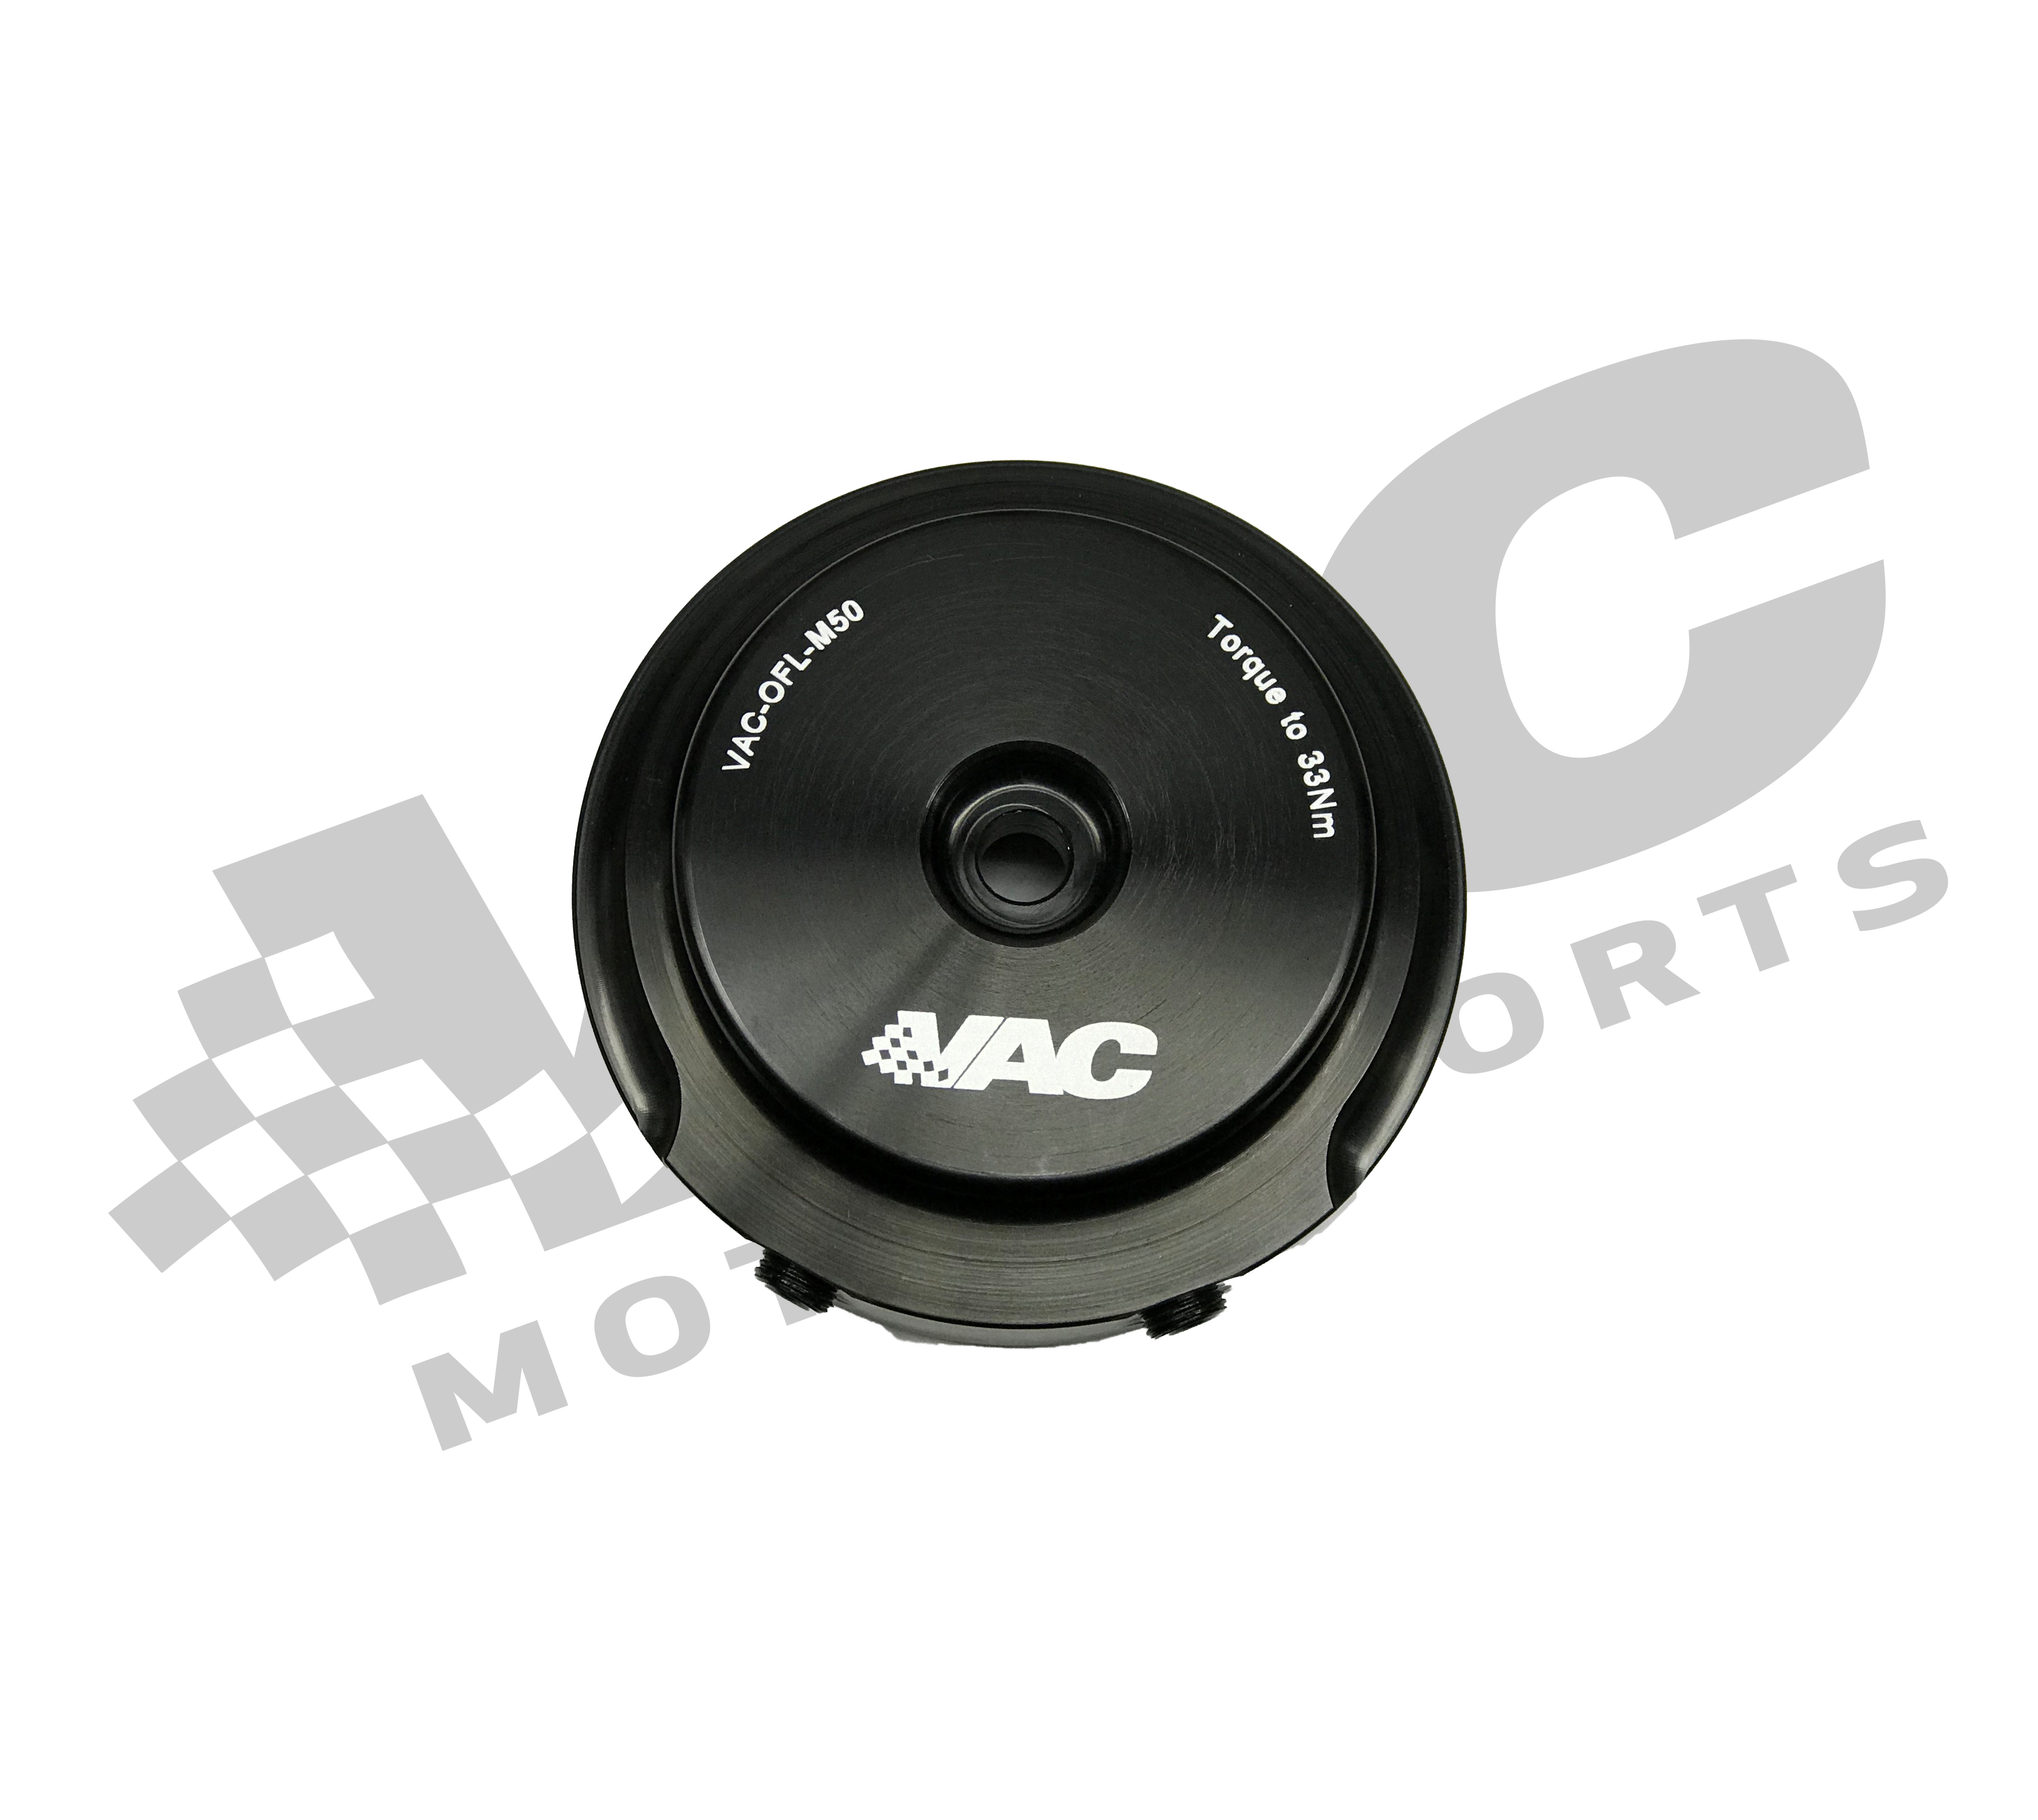 VAC Billet Oil Filter Lid w/Sensor Ports for BMW M50/M52/S50/S52/S50B30/S50B32/S54 MAIN